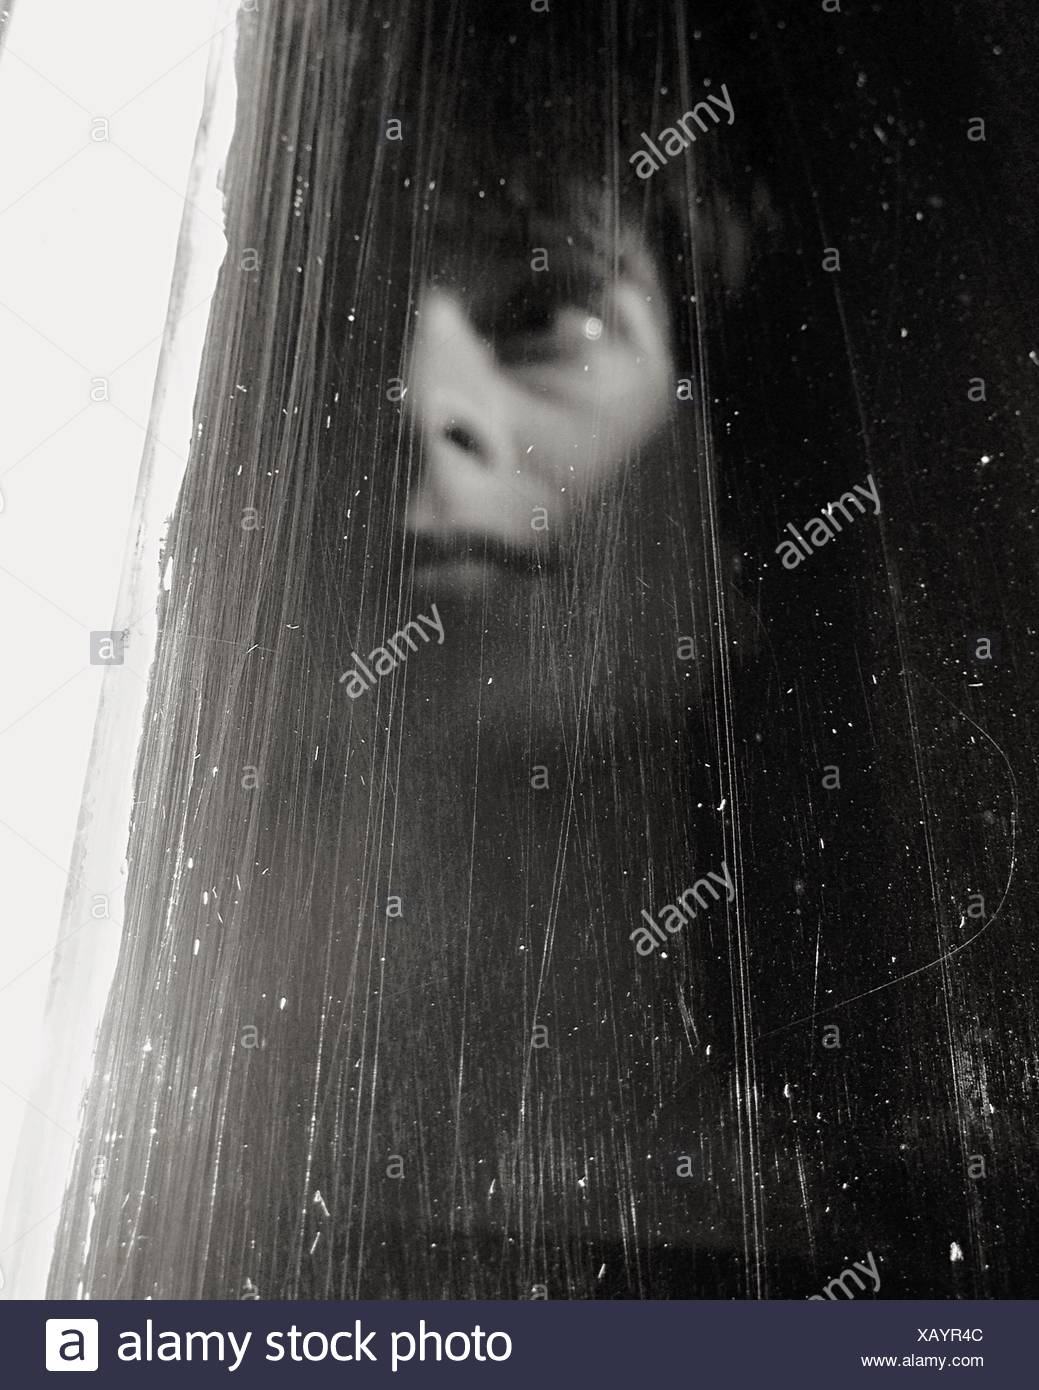 Woman Looking Out Window - Stock Image